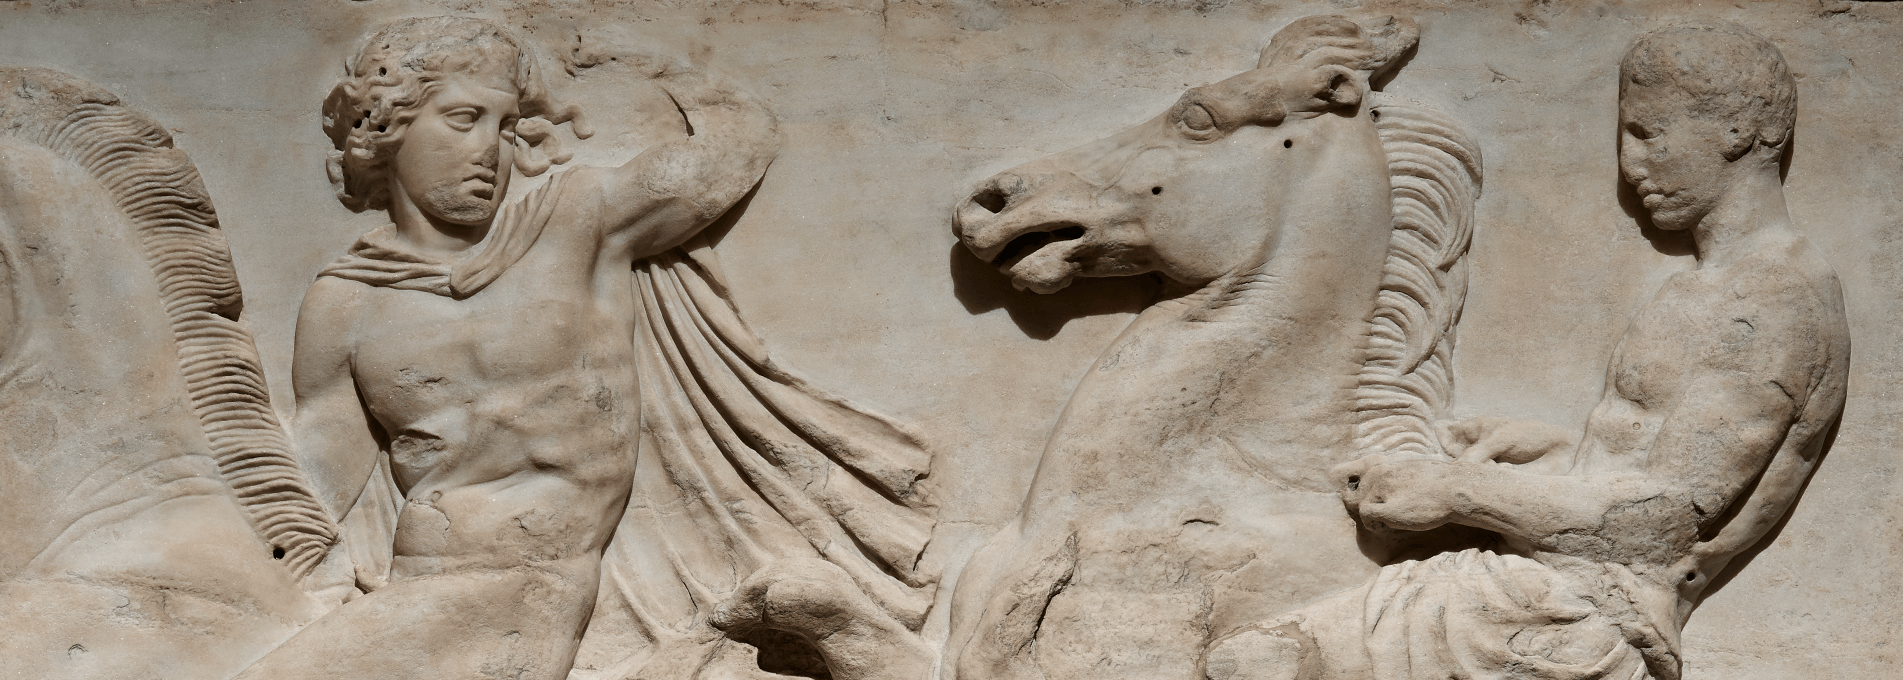 West frieze of the Parthenon (detail) © The Trustees of the British Museum